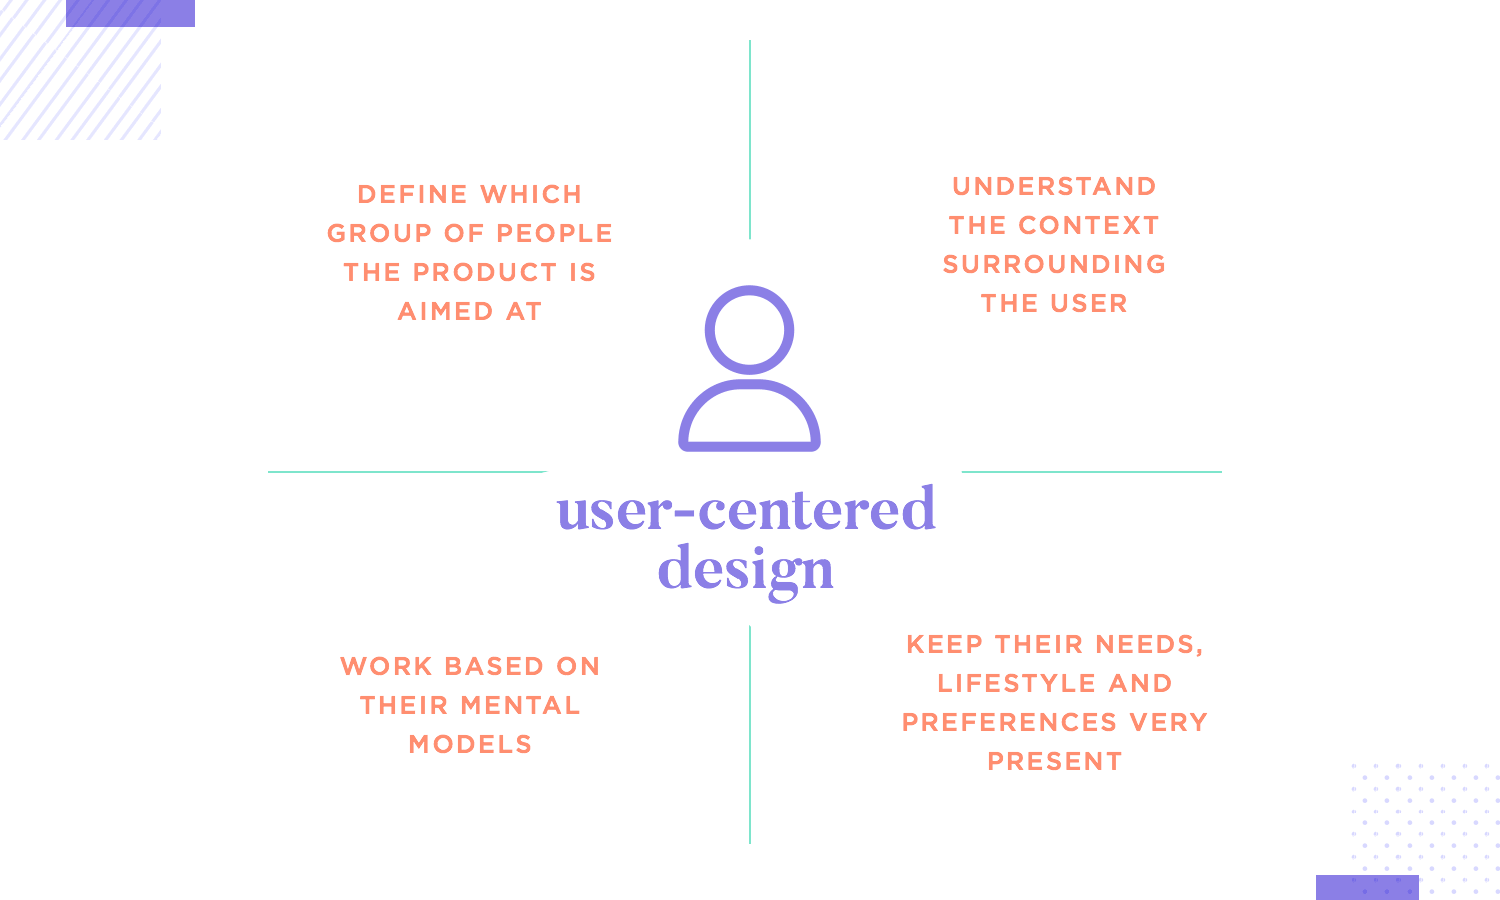 showing key aspects of user-centered desgin in ux